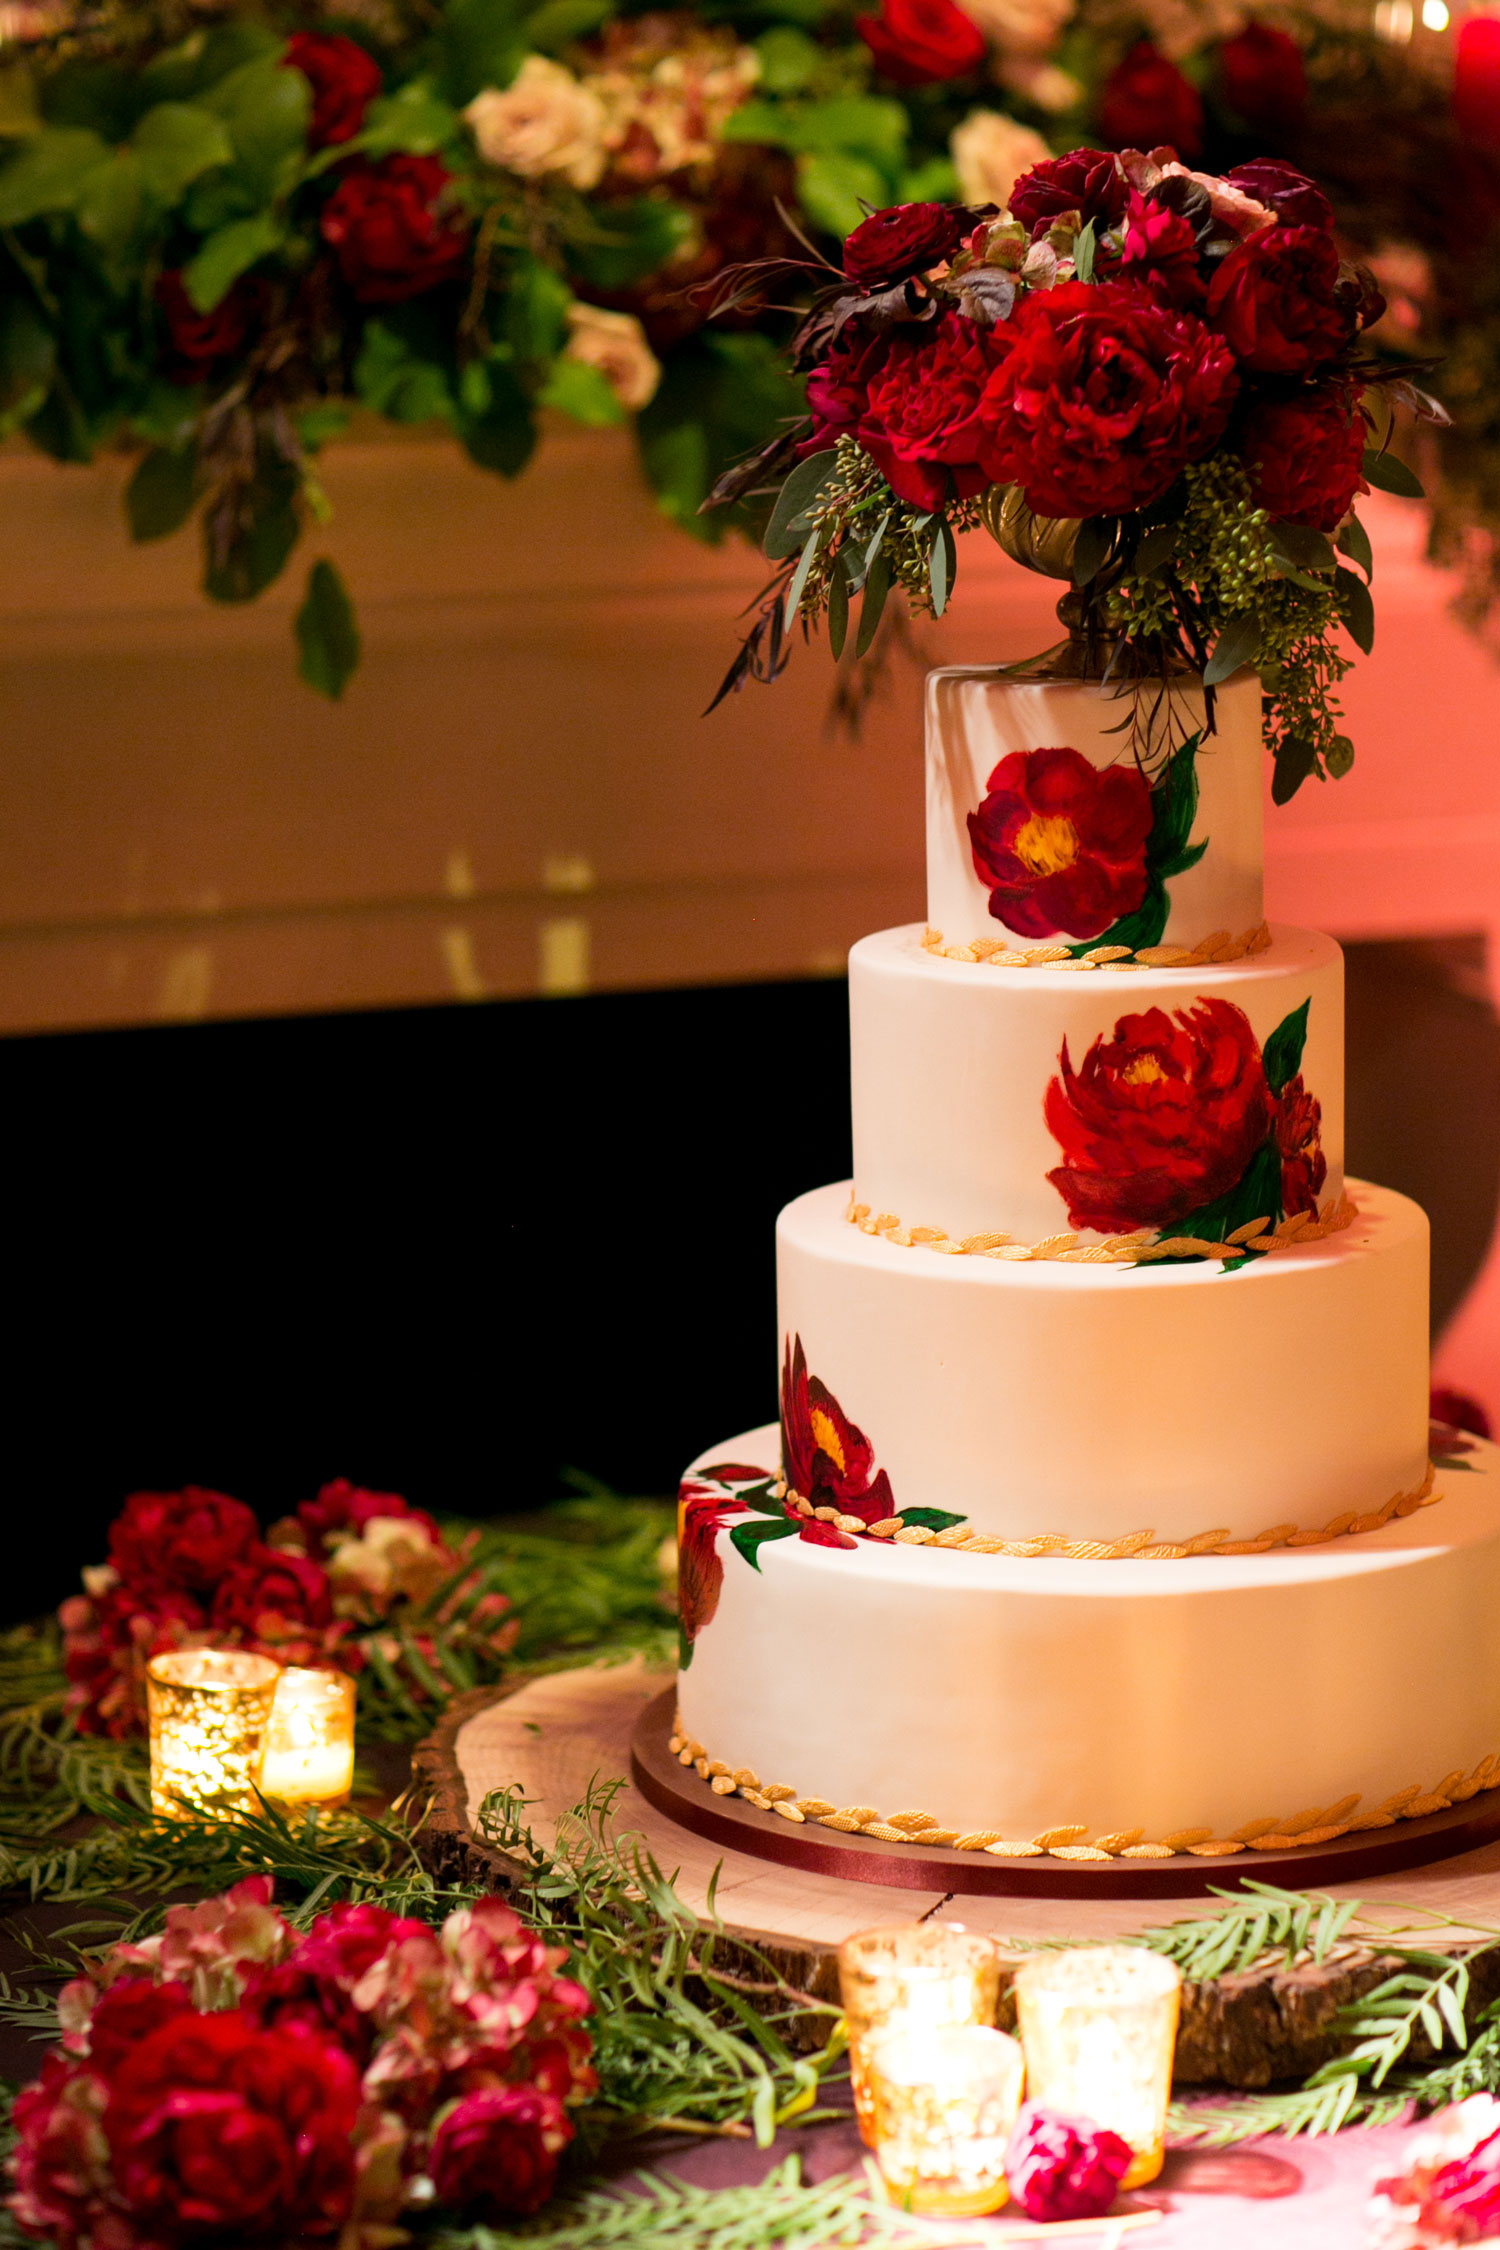 Wedding cake with hand painted flower design on fondant red peony flowers